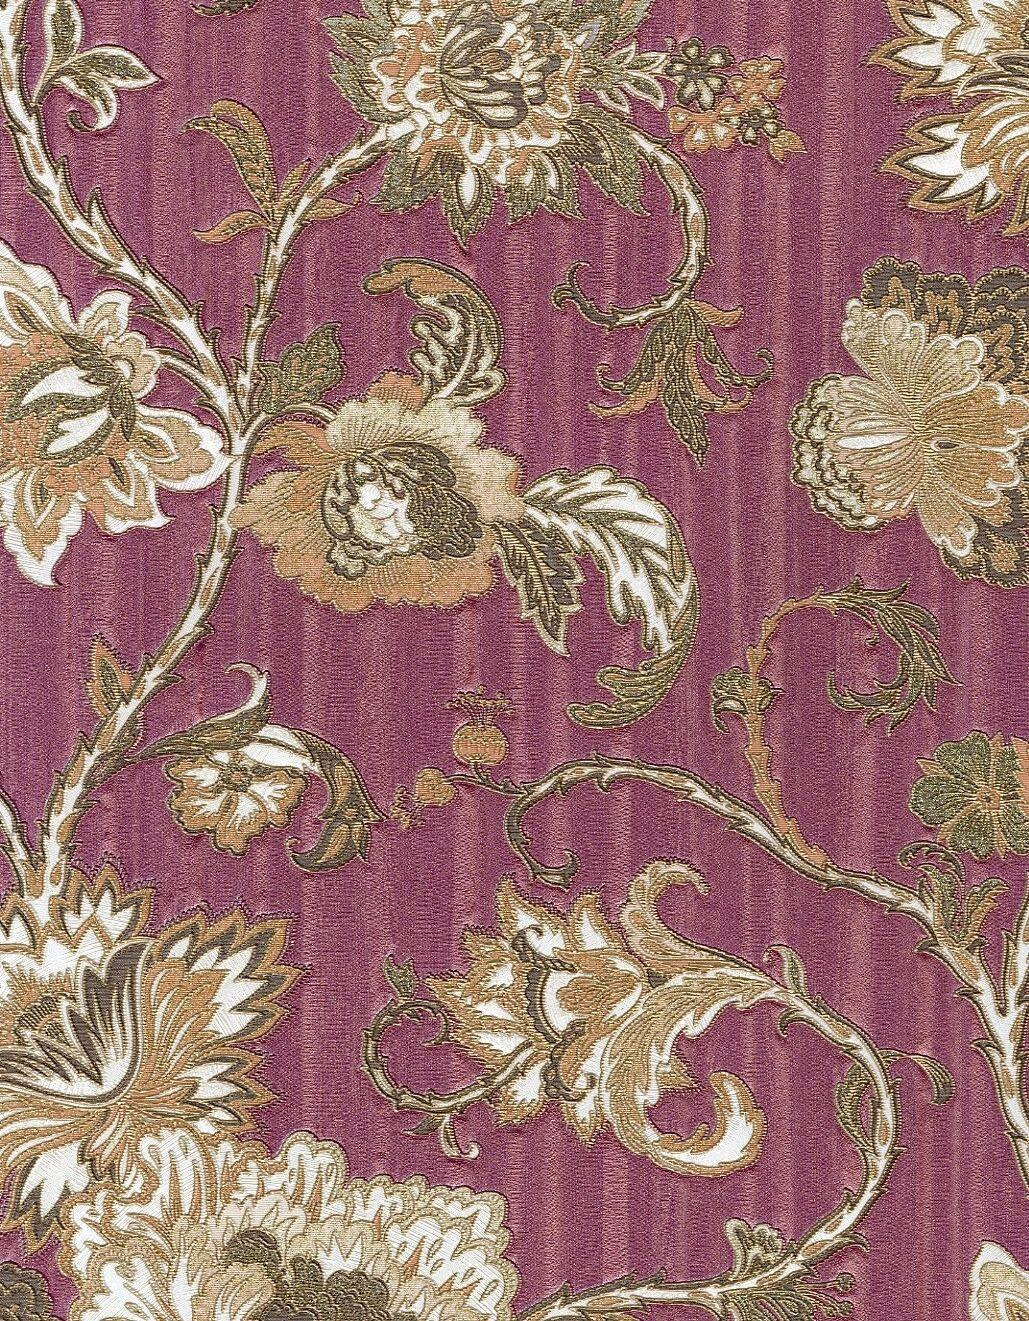 Zambaiti Citta Alta Floral With Gold Glitter Wallpaper 3258